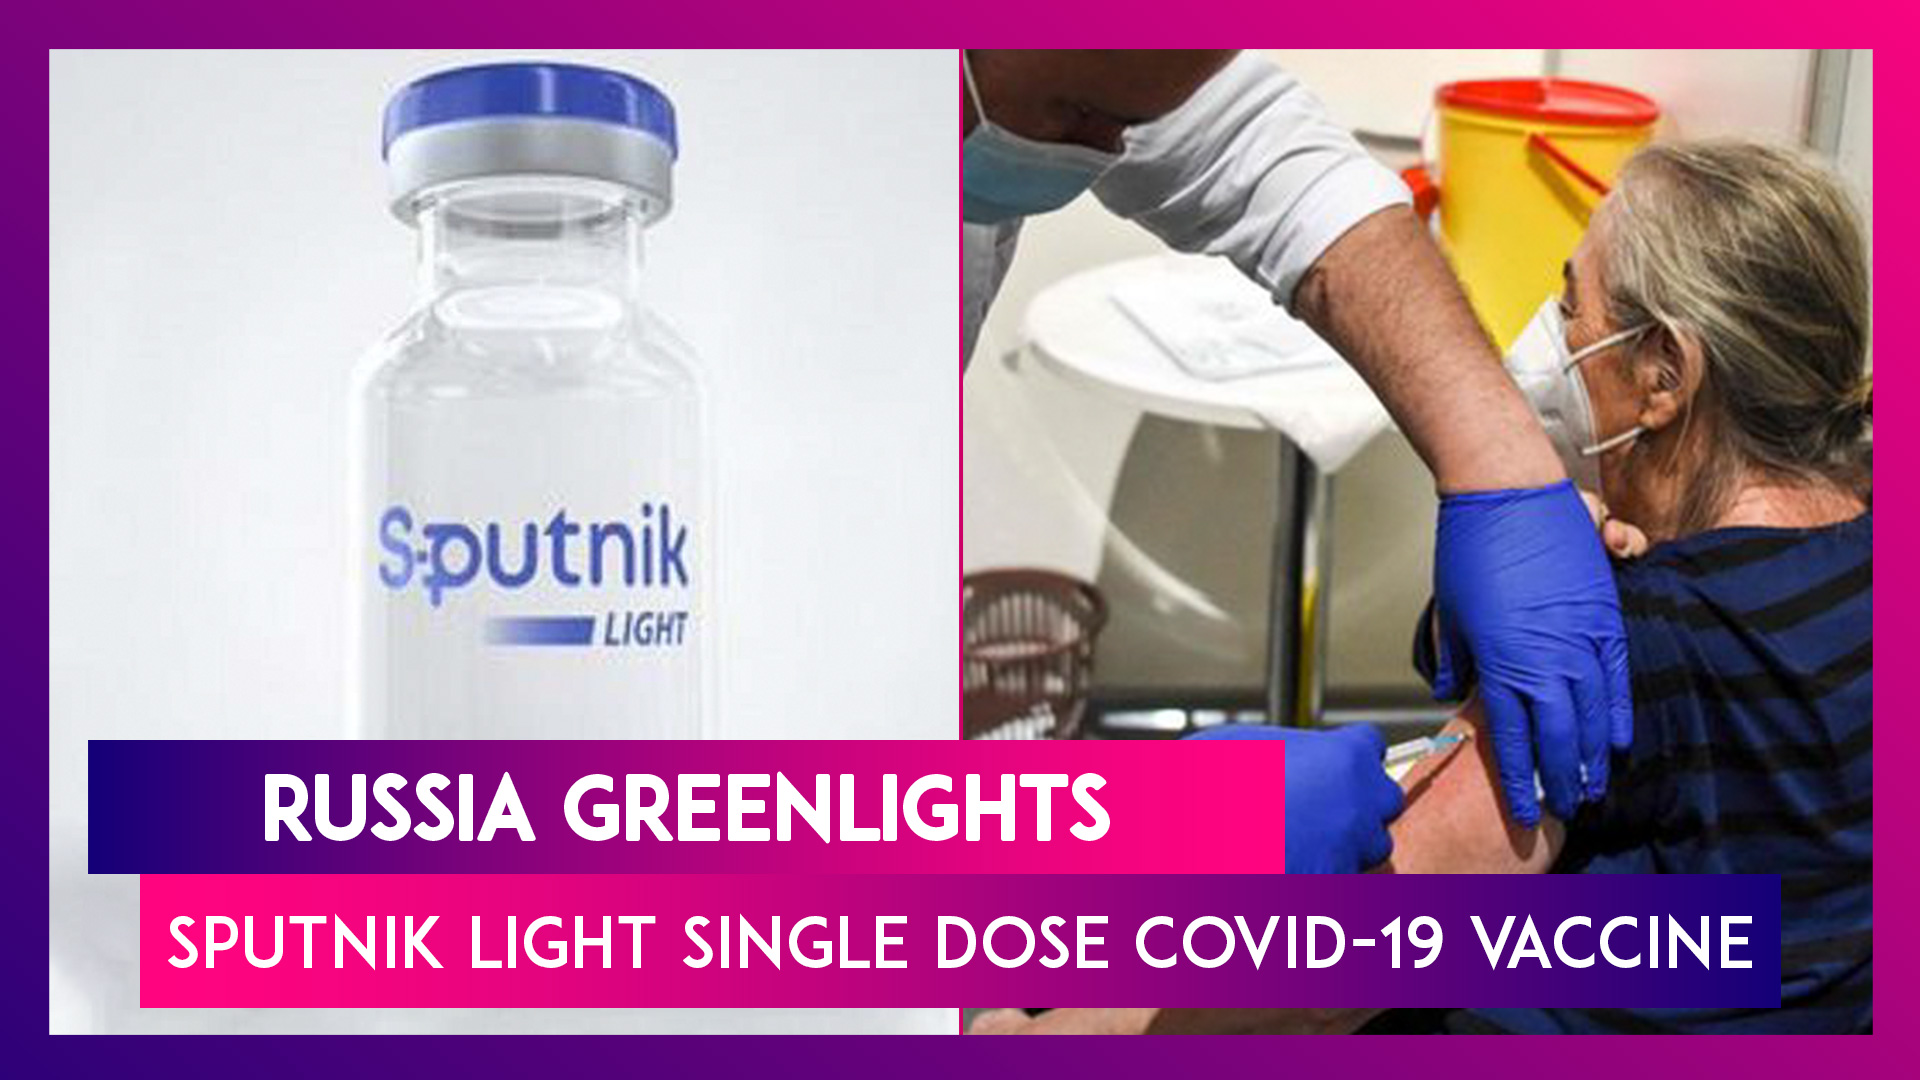 Russia Greenlights Sputnik Light Single Dose COVID-19 Vaccine